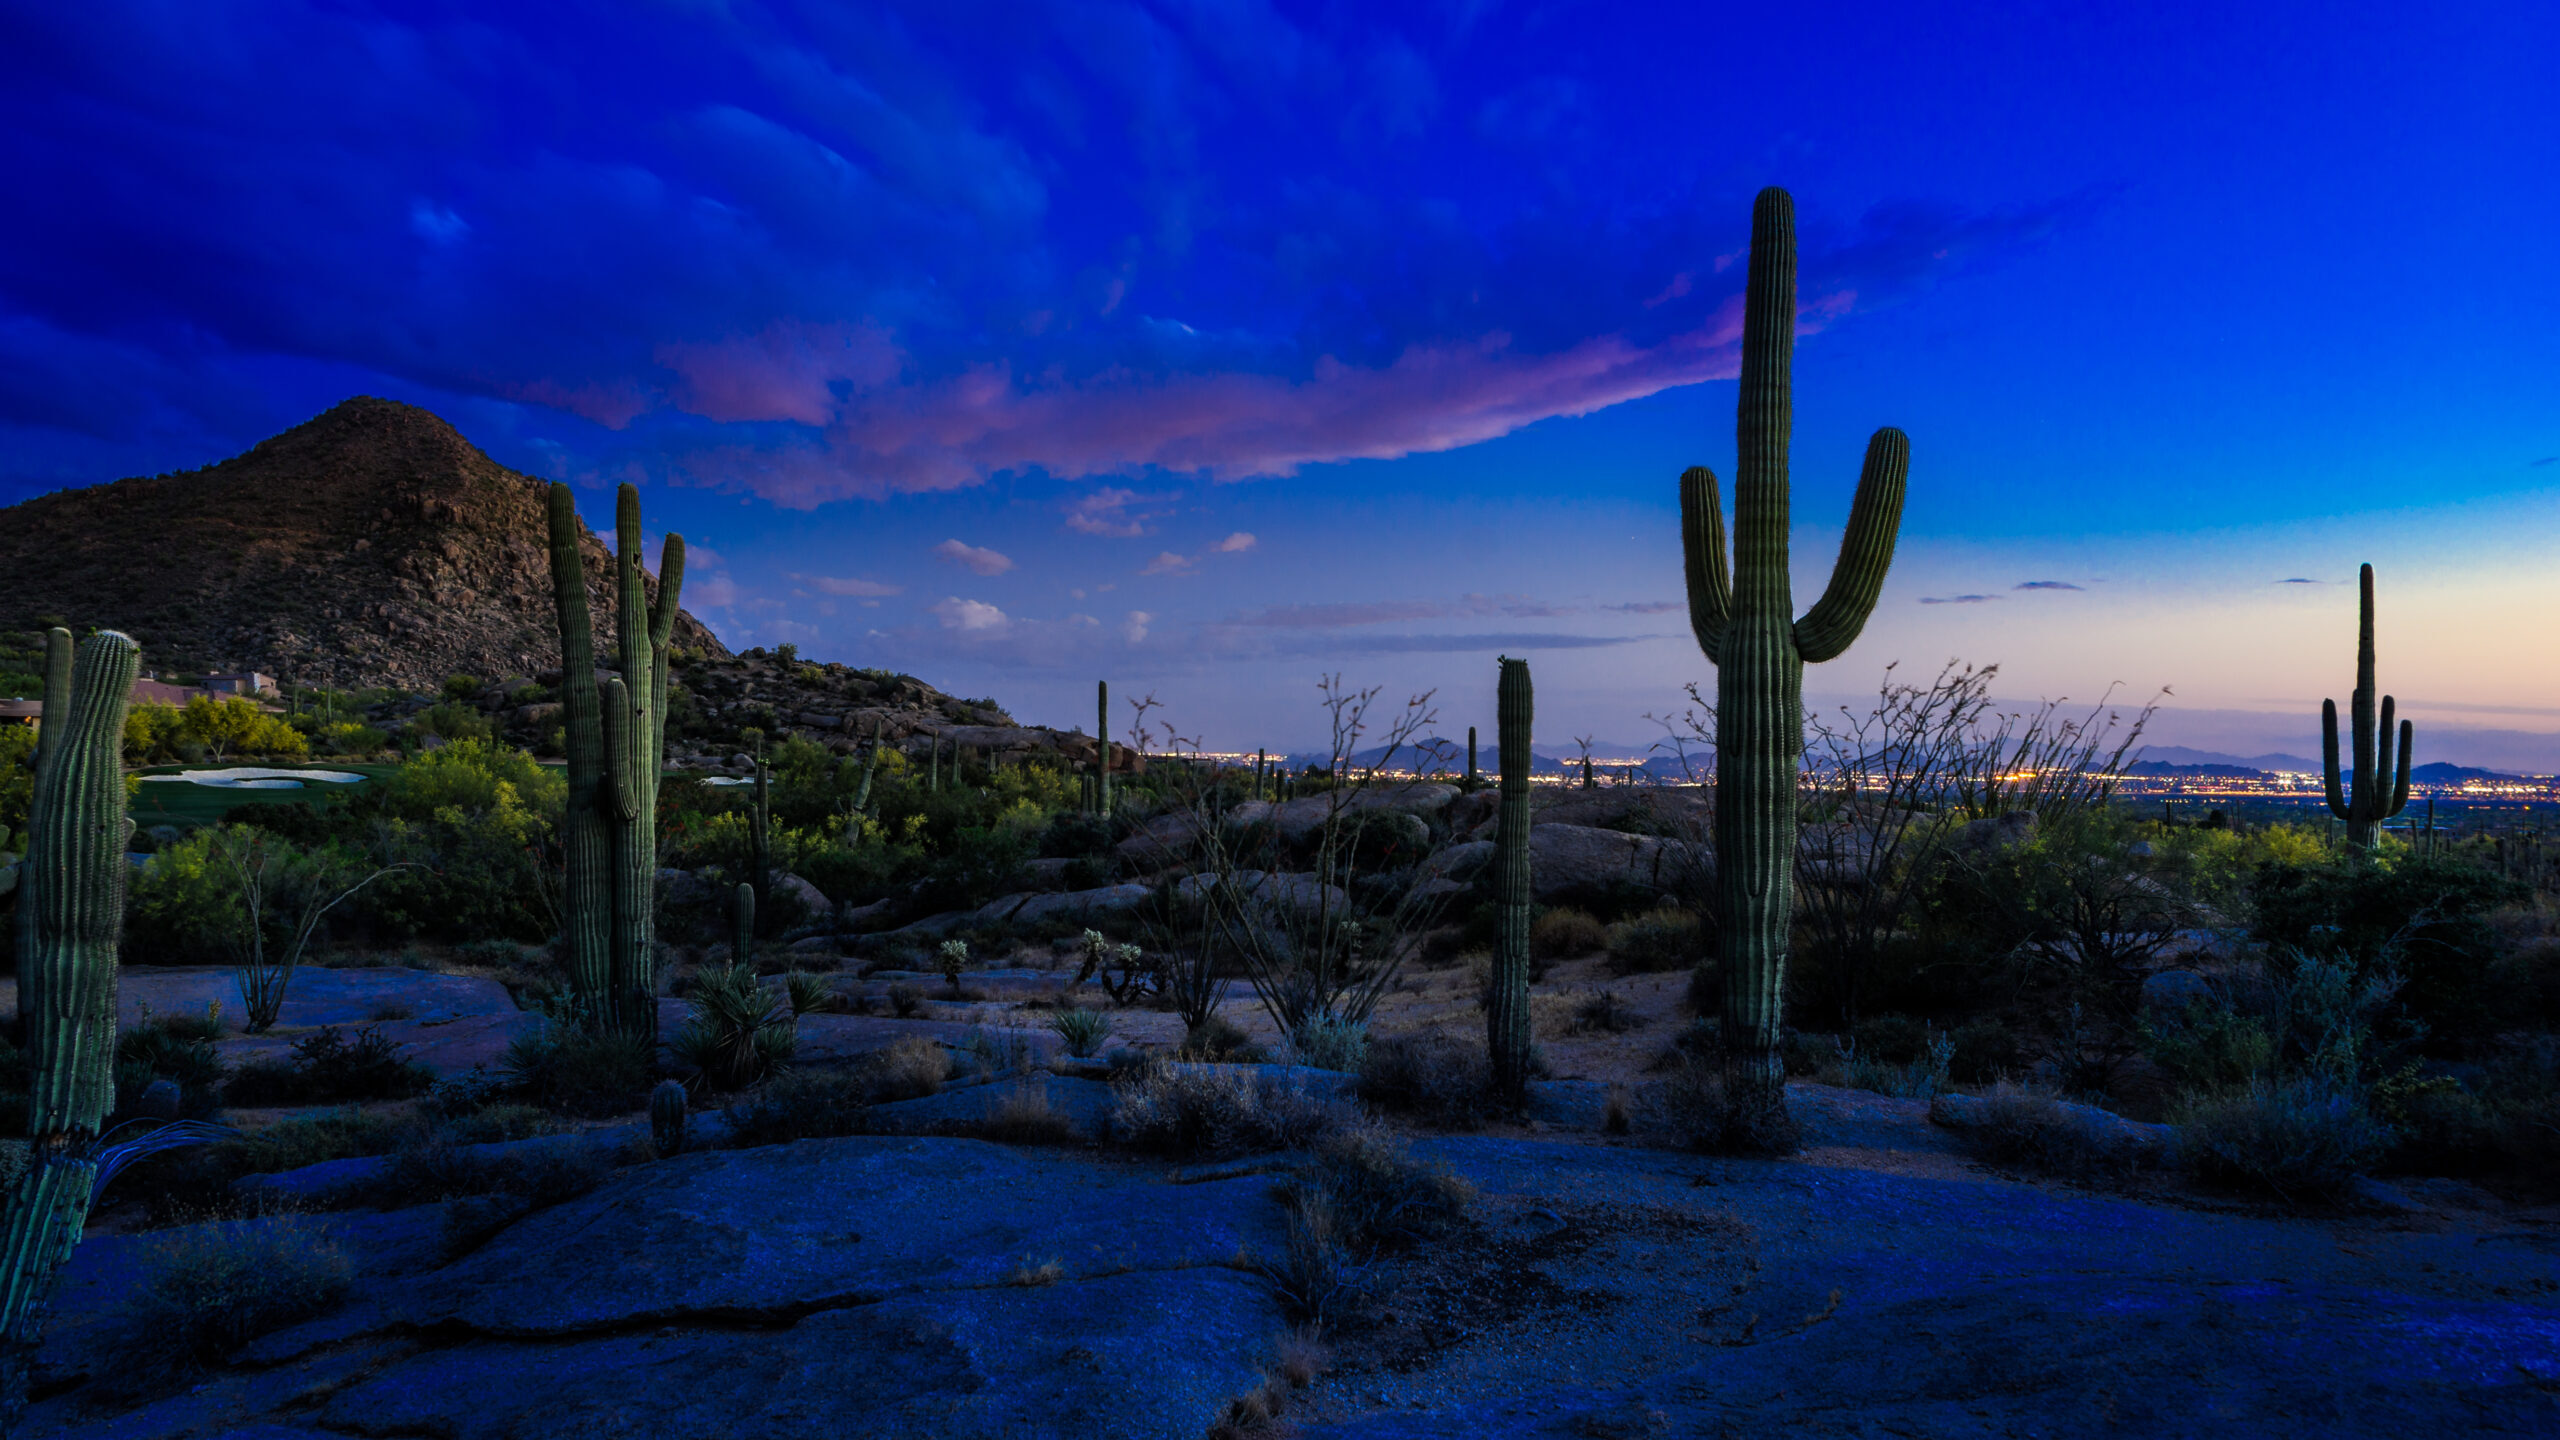 10 Best Places to Visit in Arizona - A Newcomer's Guide